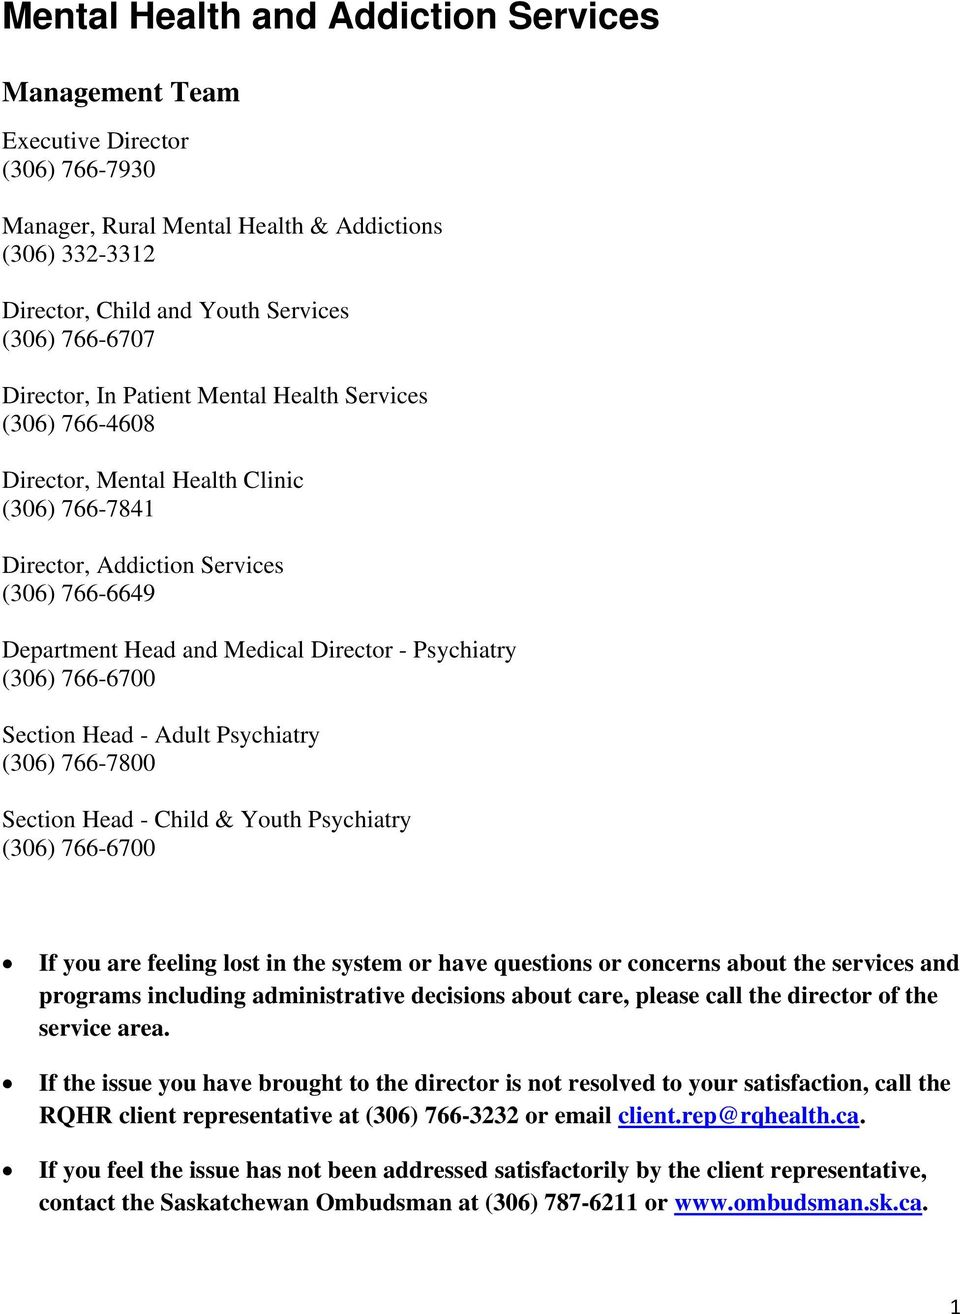 (306) 766-6700 Section Head - Adult Psychiatry (306) 766-7800 Section Head - Child & Youth Psychiatry (306) 766-6700 If you are feeling lost in the system or have questions or concerns about the